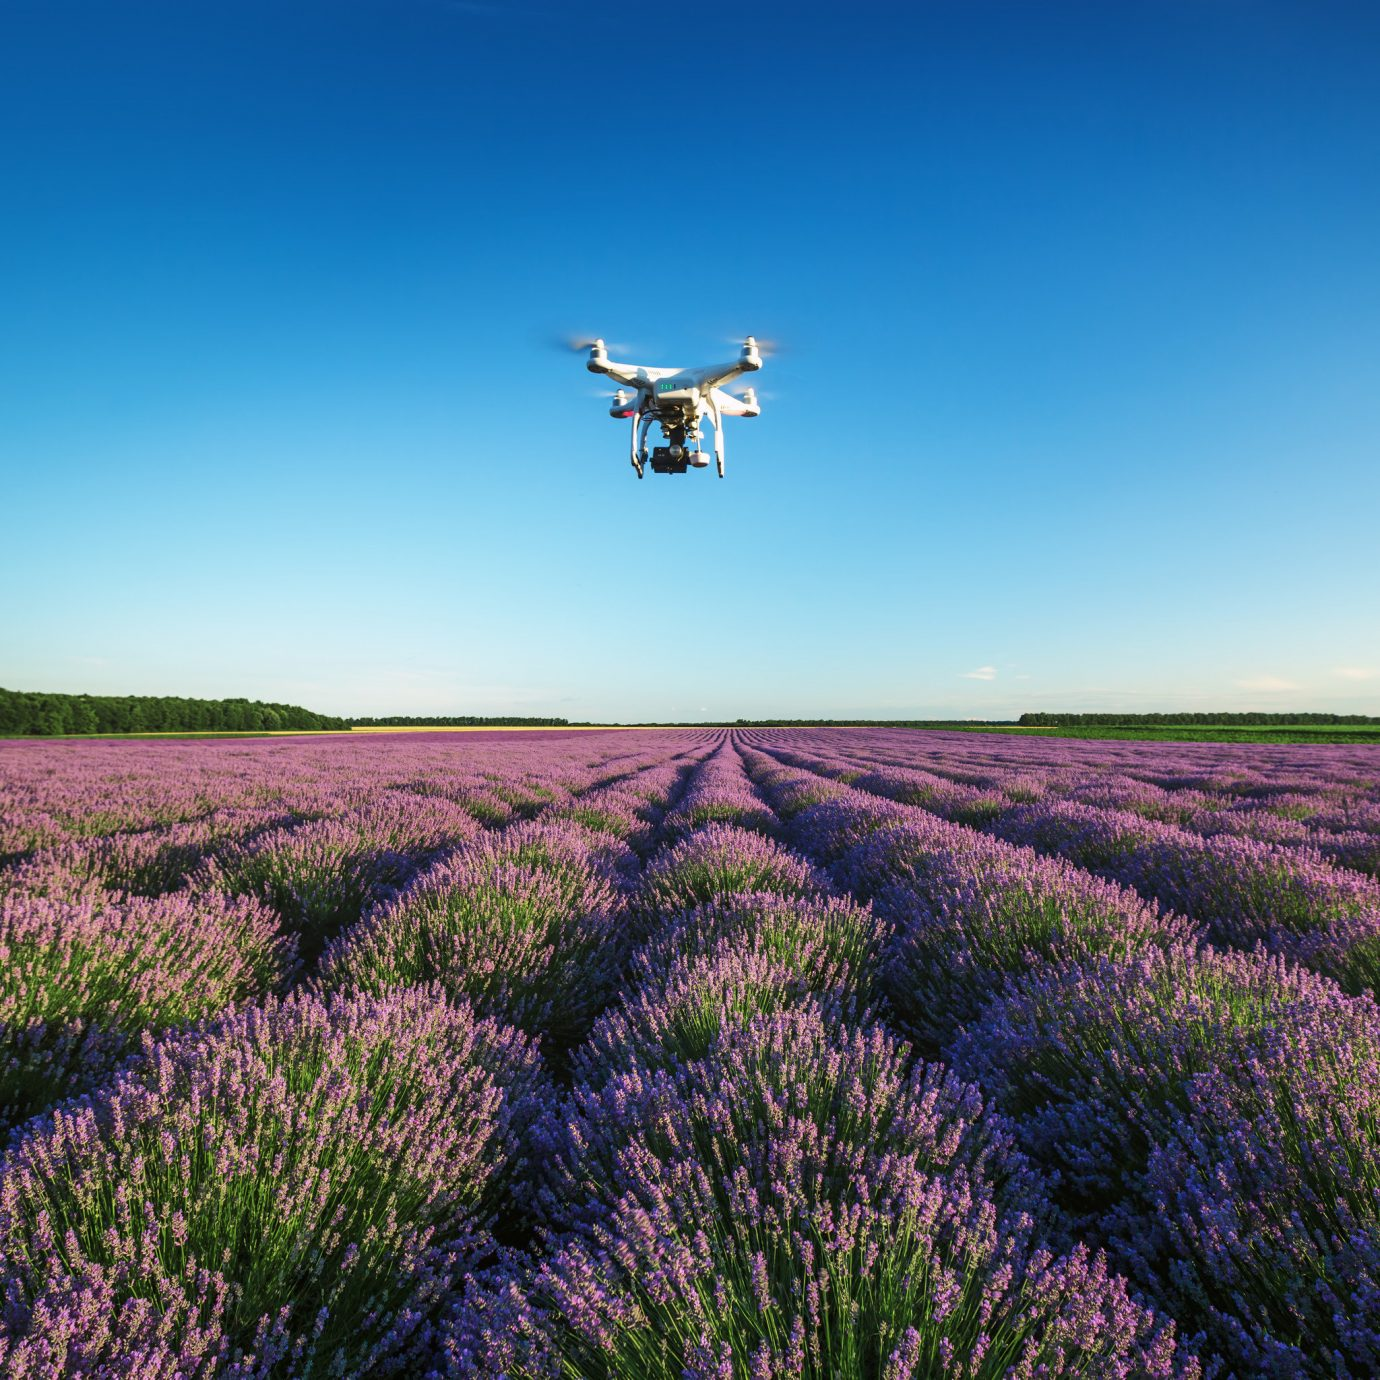 drone Travel Shop Travel Tech Travel Tips grass sky outdoor flower field grassland plant horizon lavender prairie plain grass family meadow atmosphere of earth land plant grassy aircraft steppe flowering plant english lavender agriculture wildflower runway land lush landing hillside day